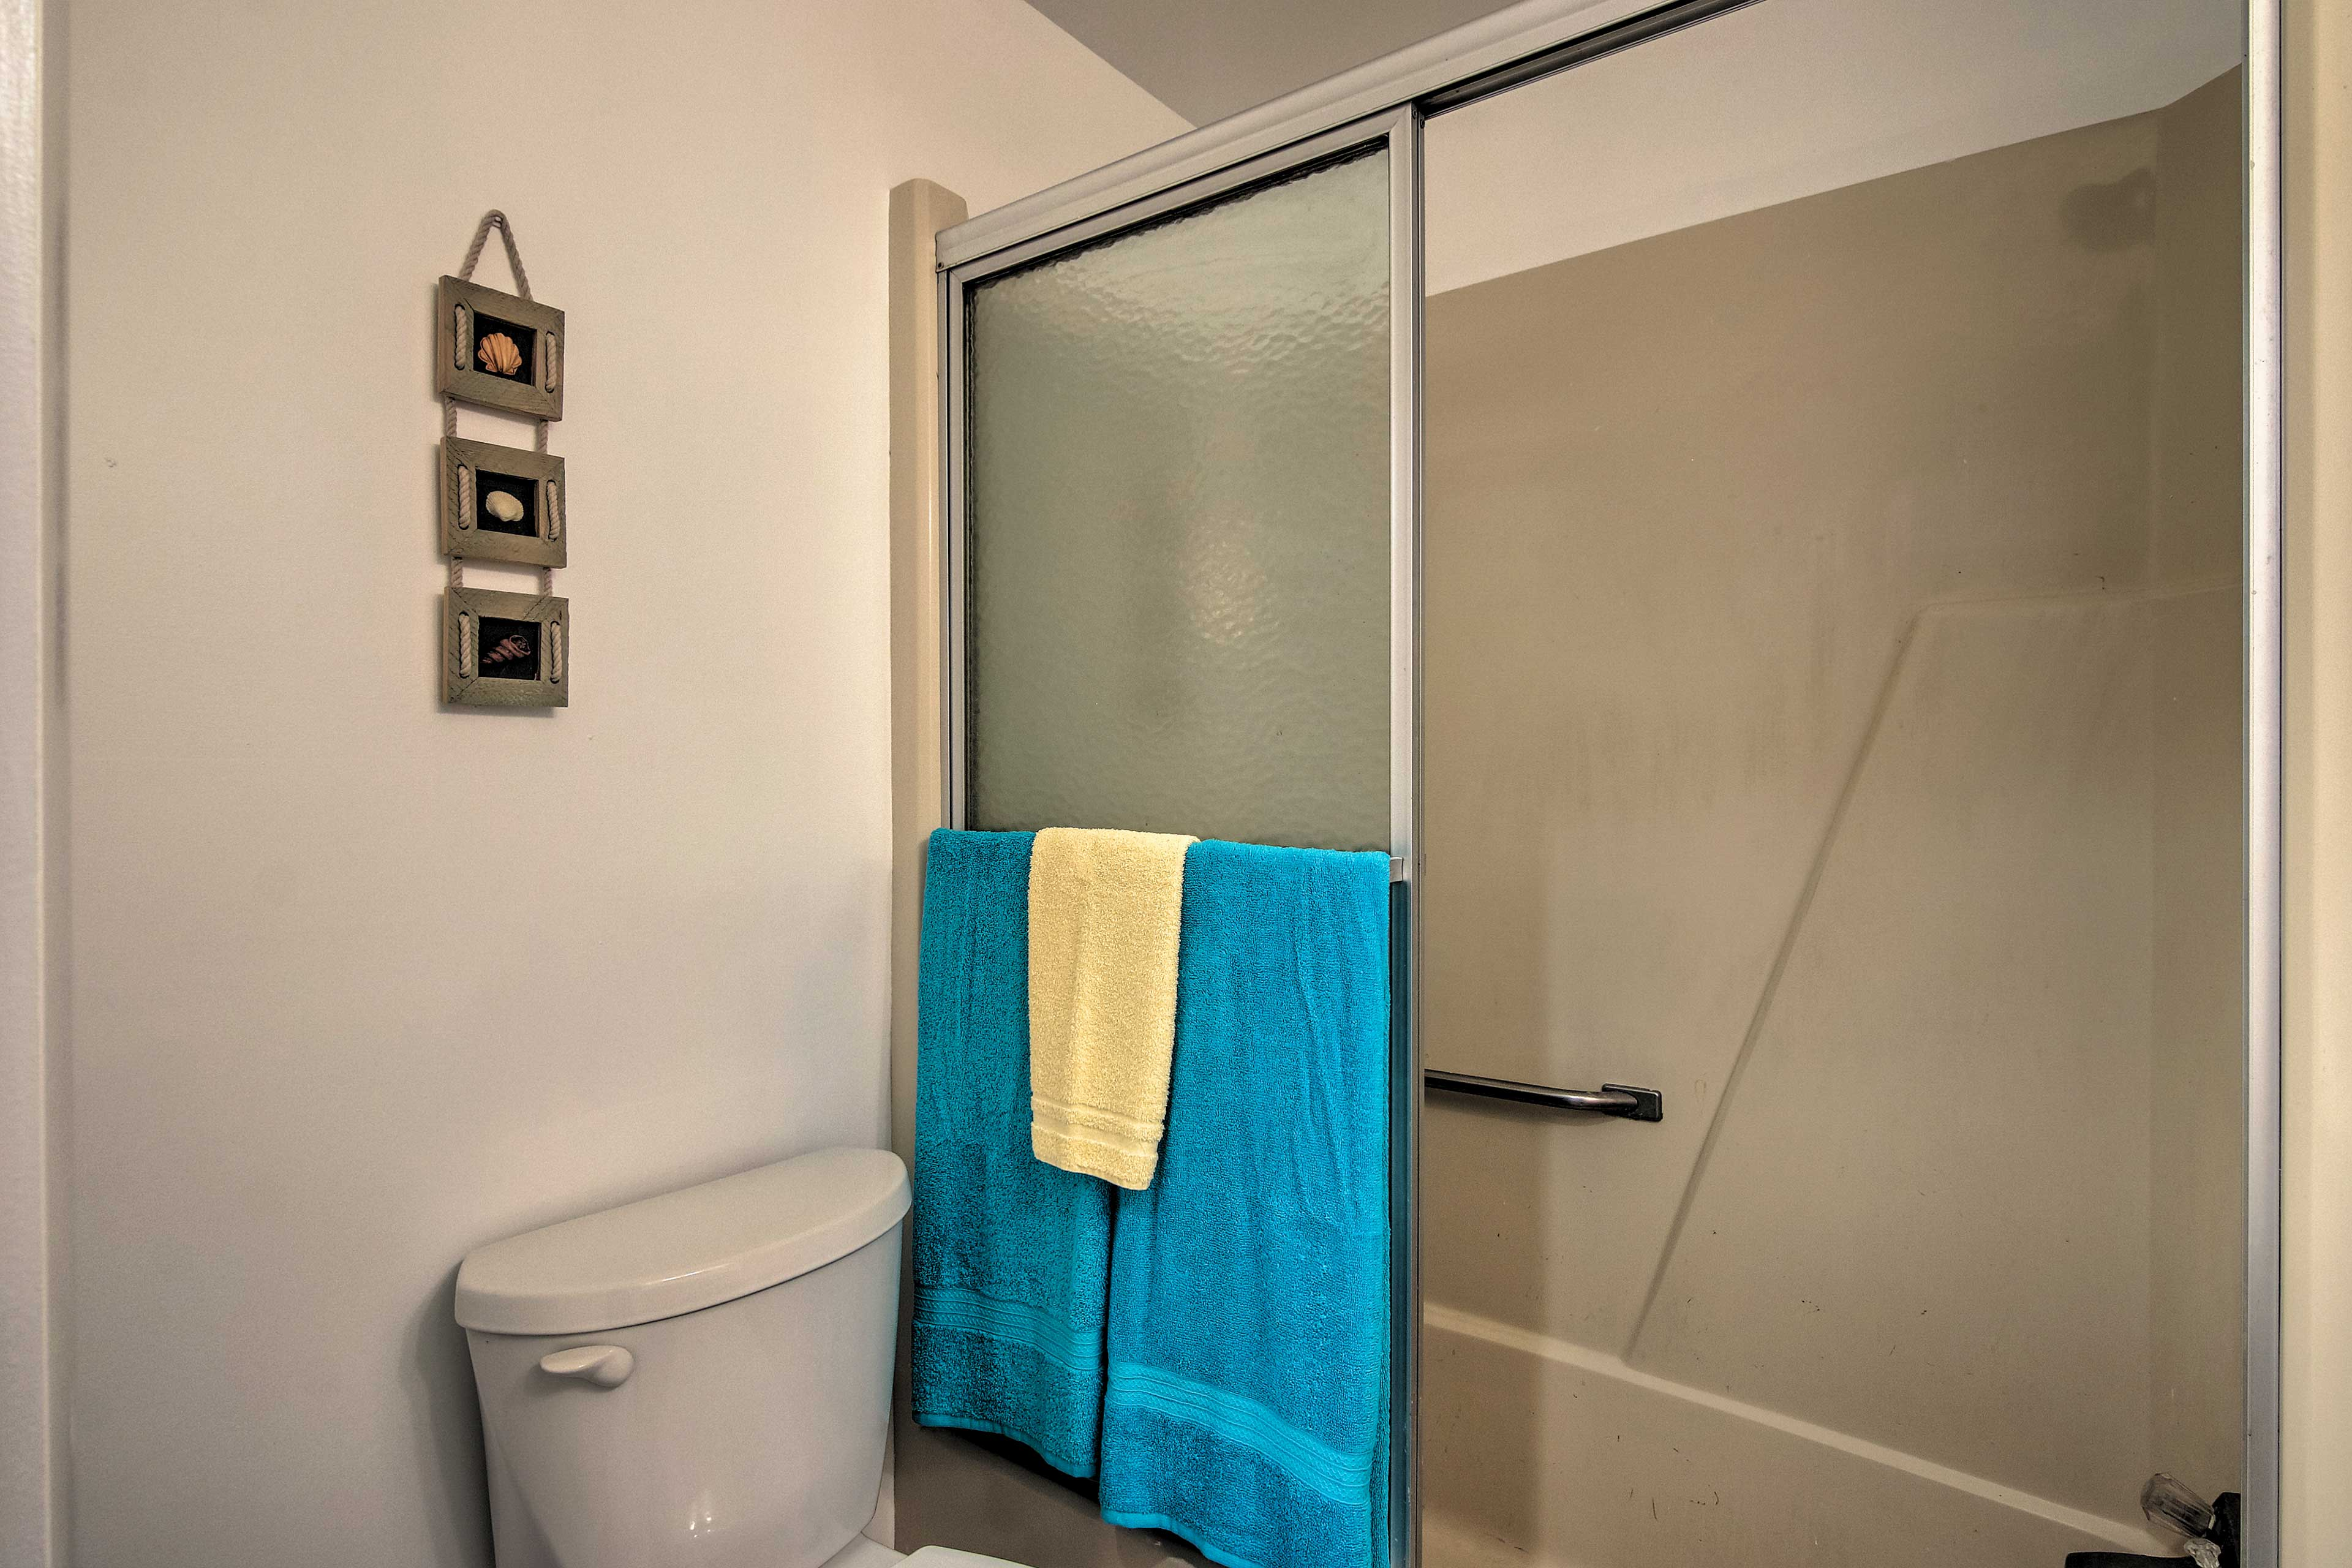 The bathroom includes a shower/tub combo with a glass door.